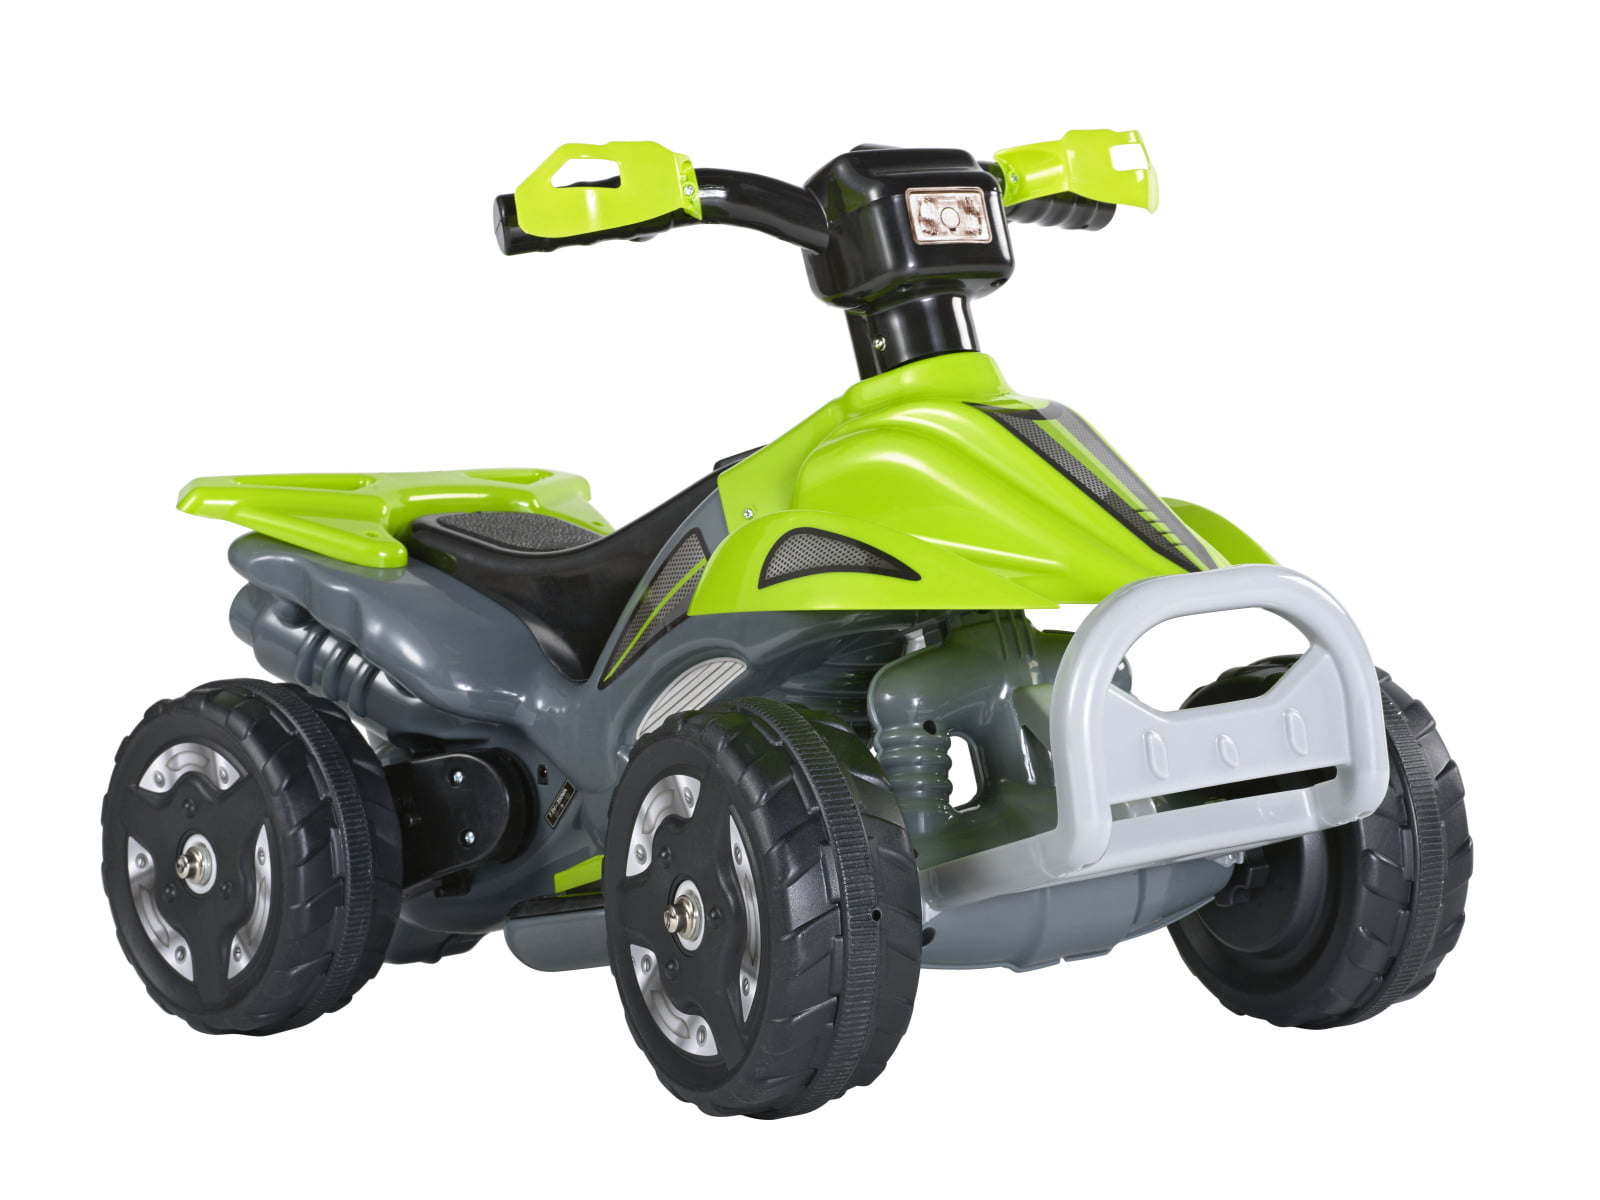 Childrens ATV on the battery. Features Prices